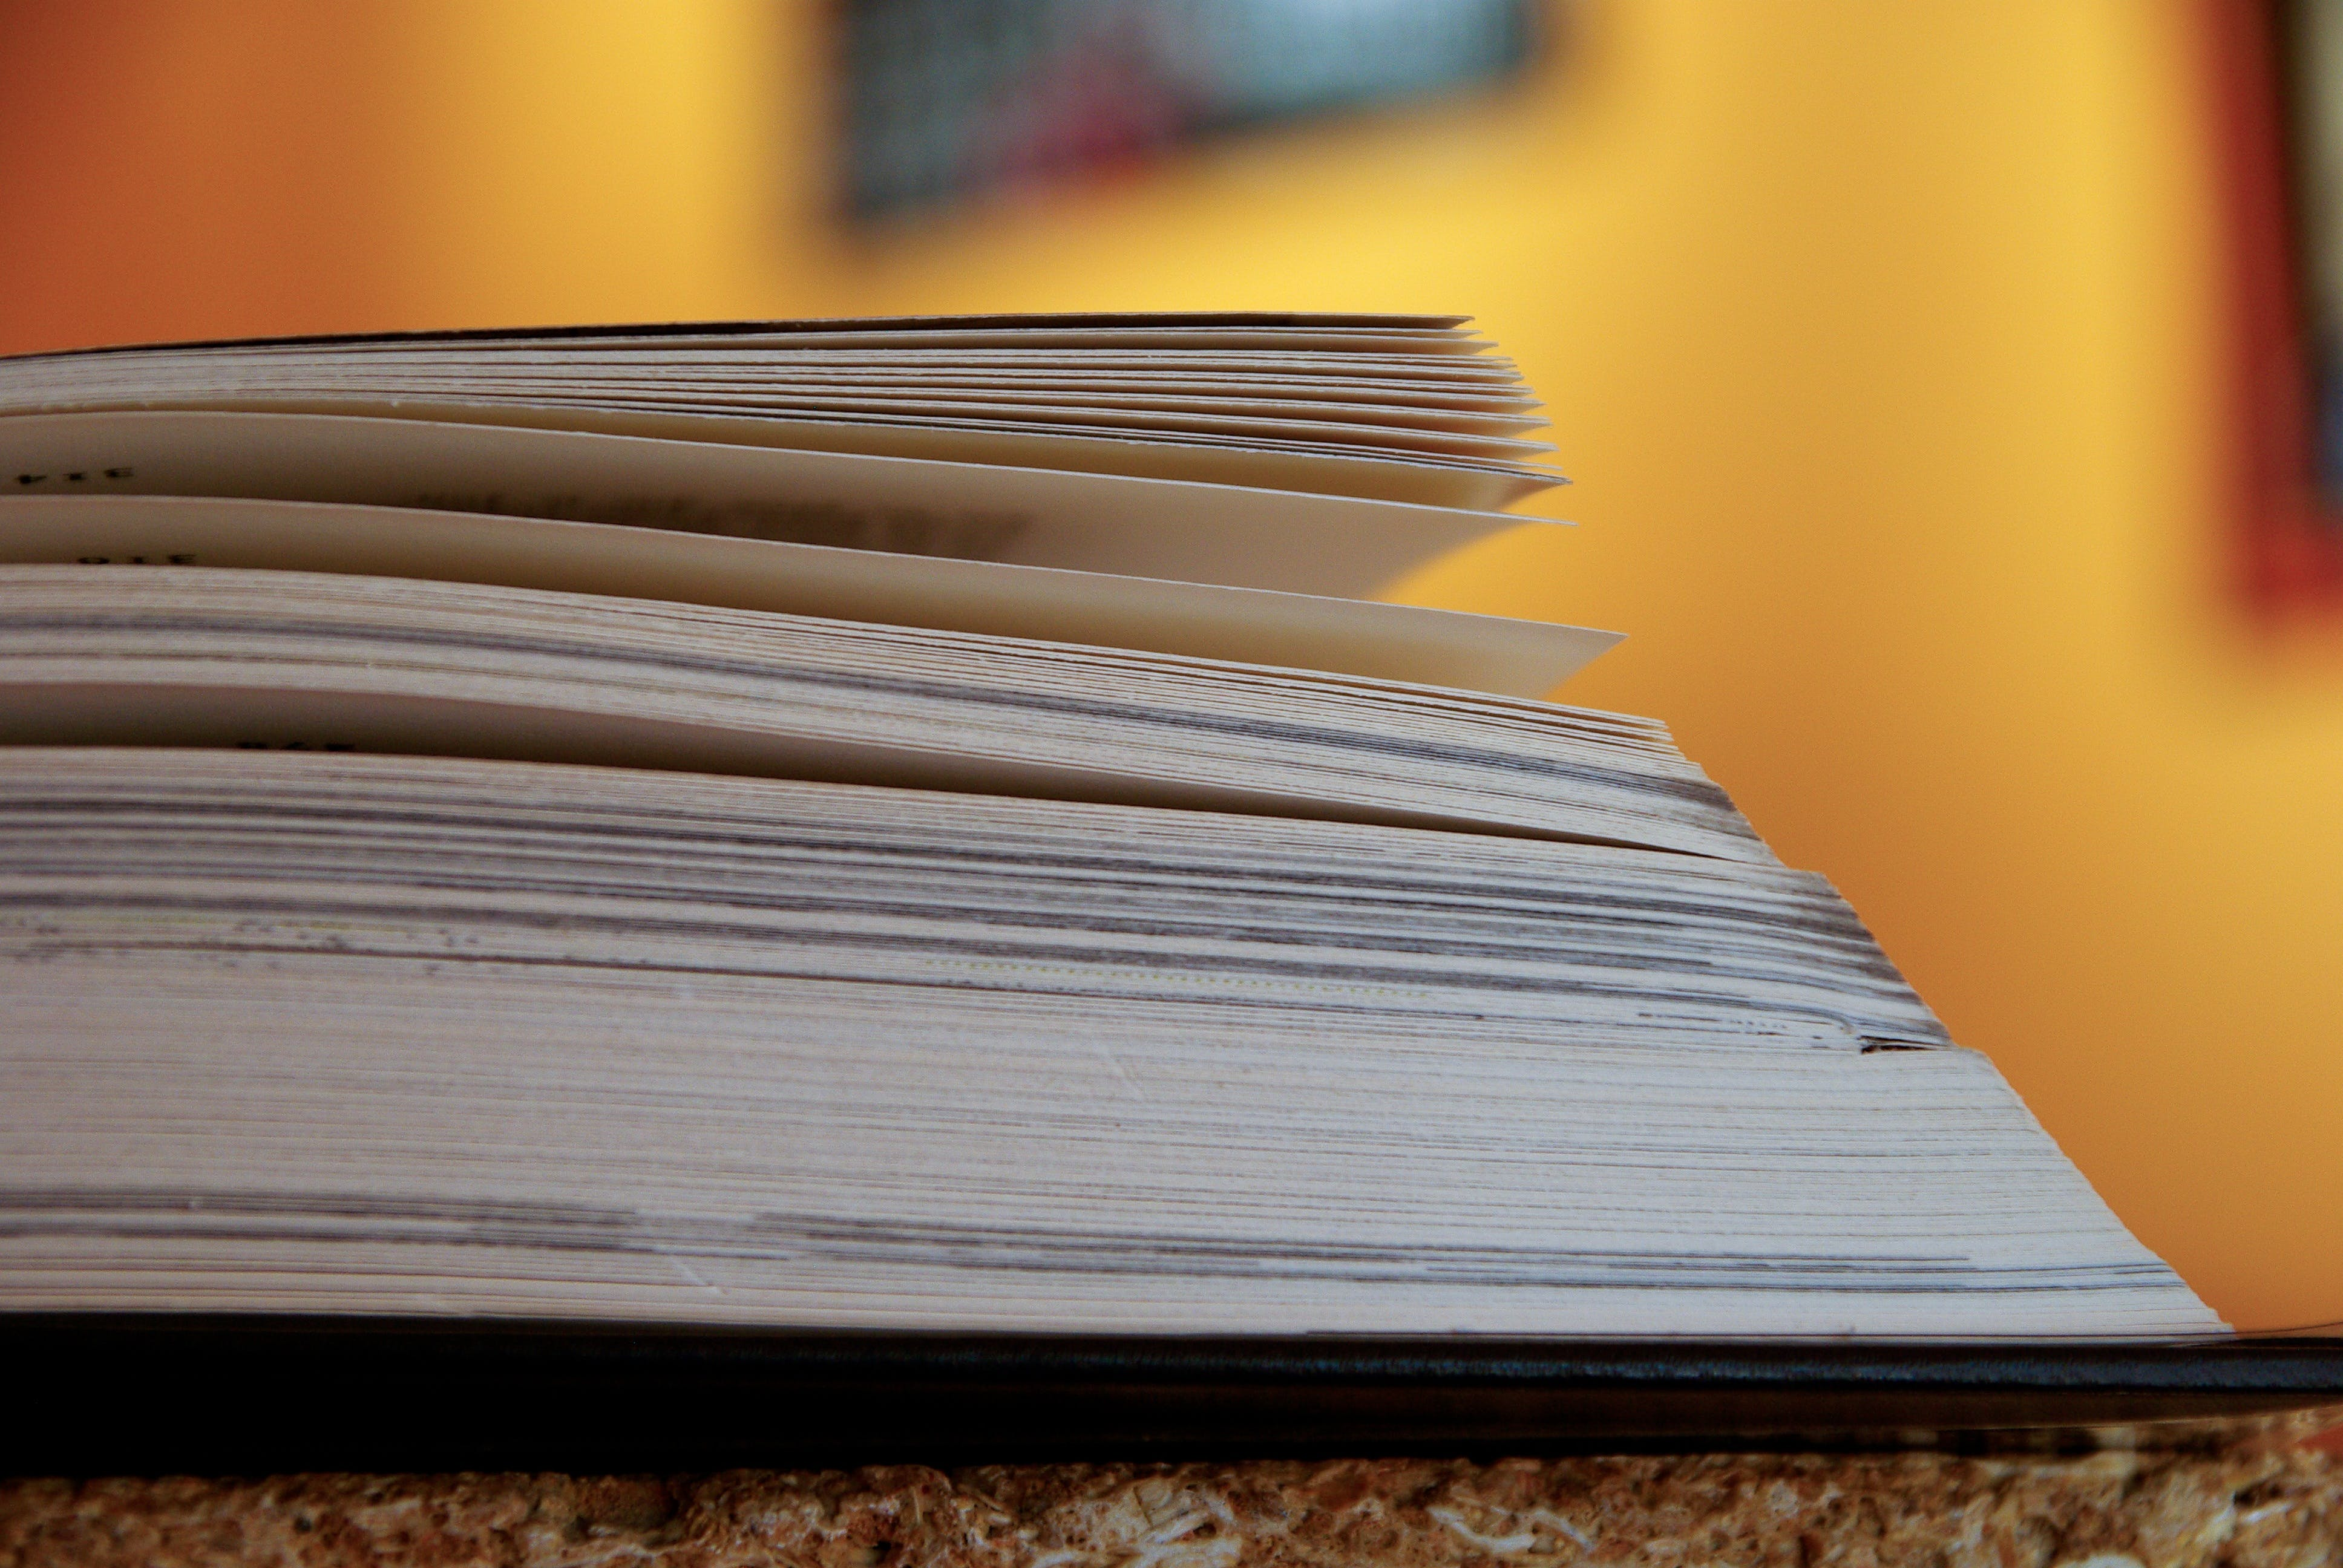 Closeup Photography of Book Pages